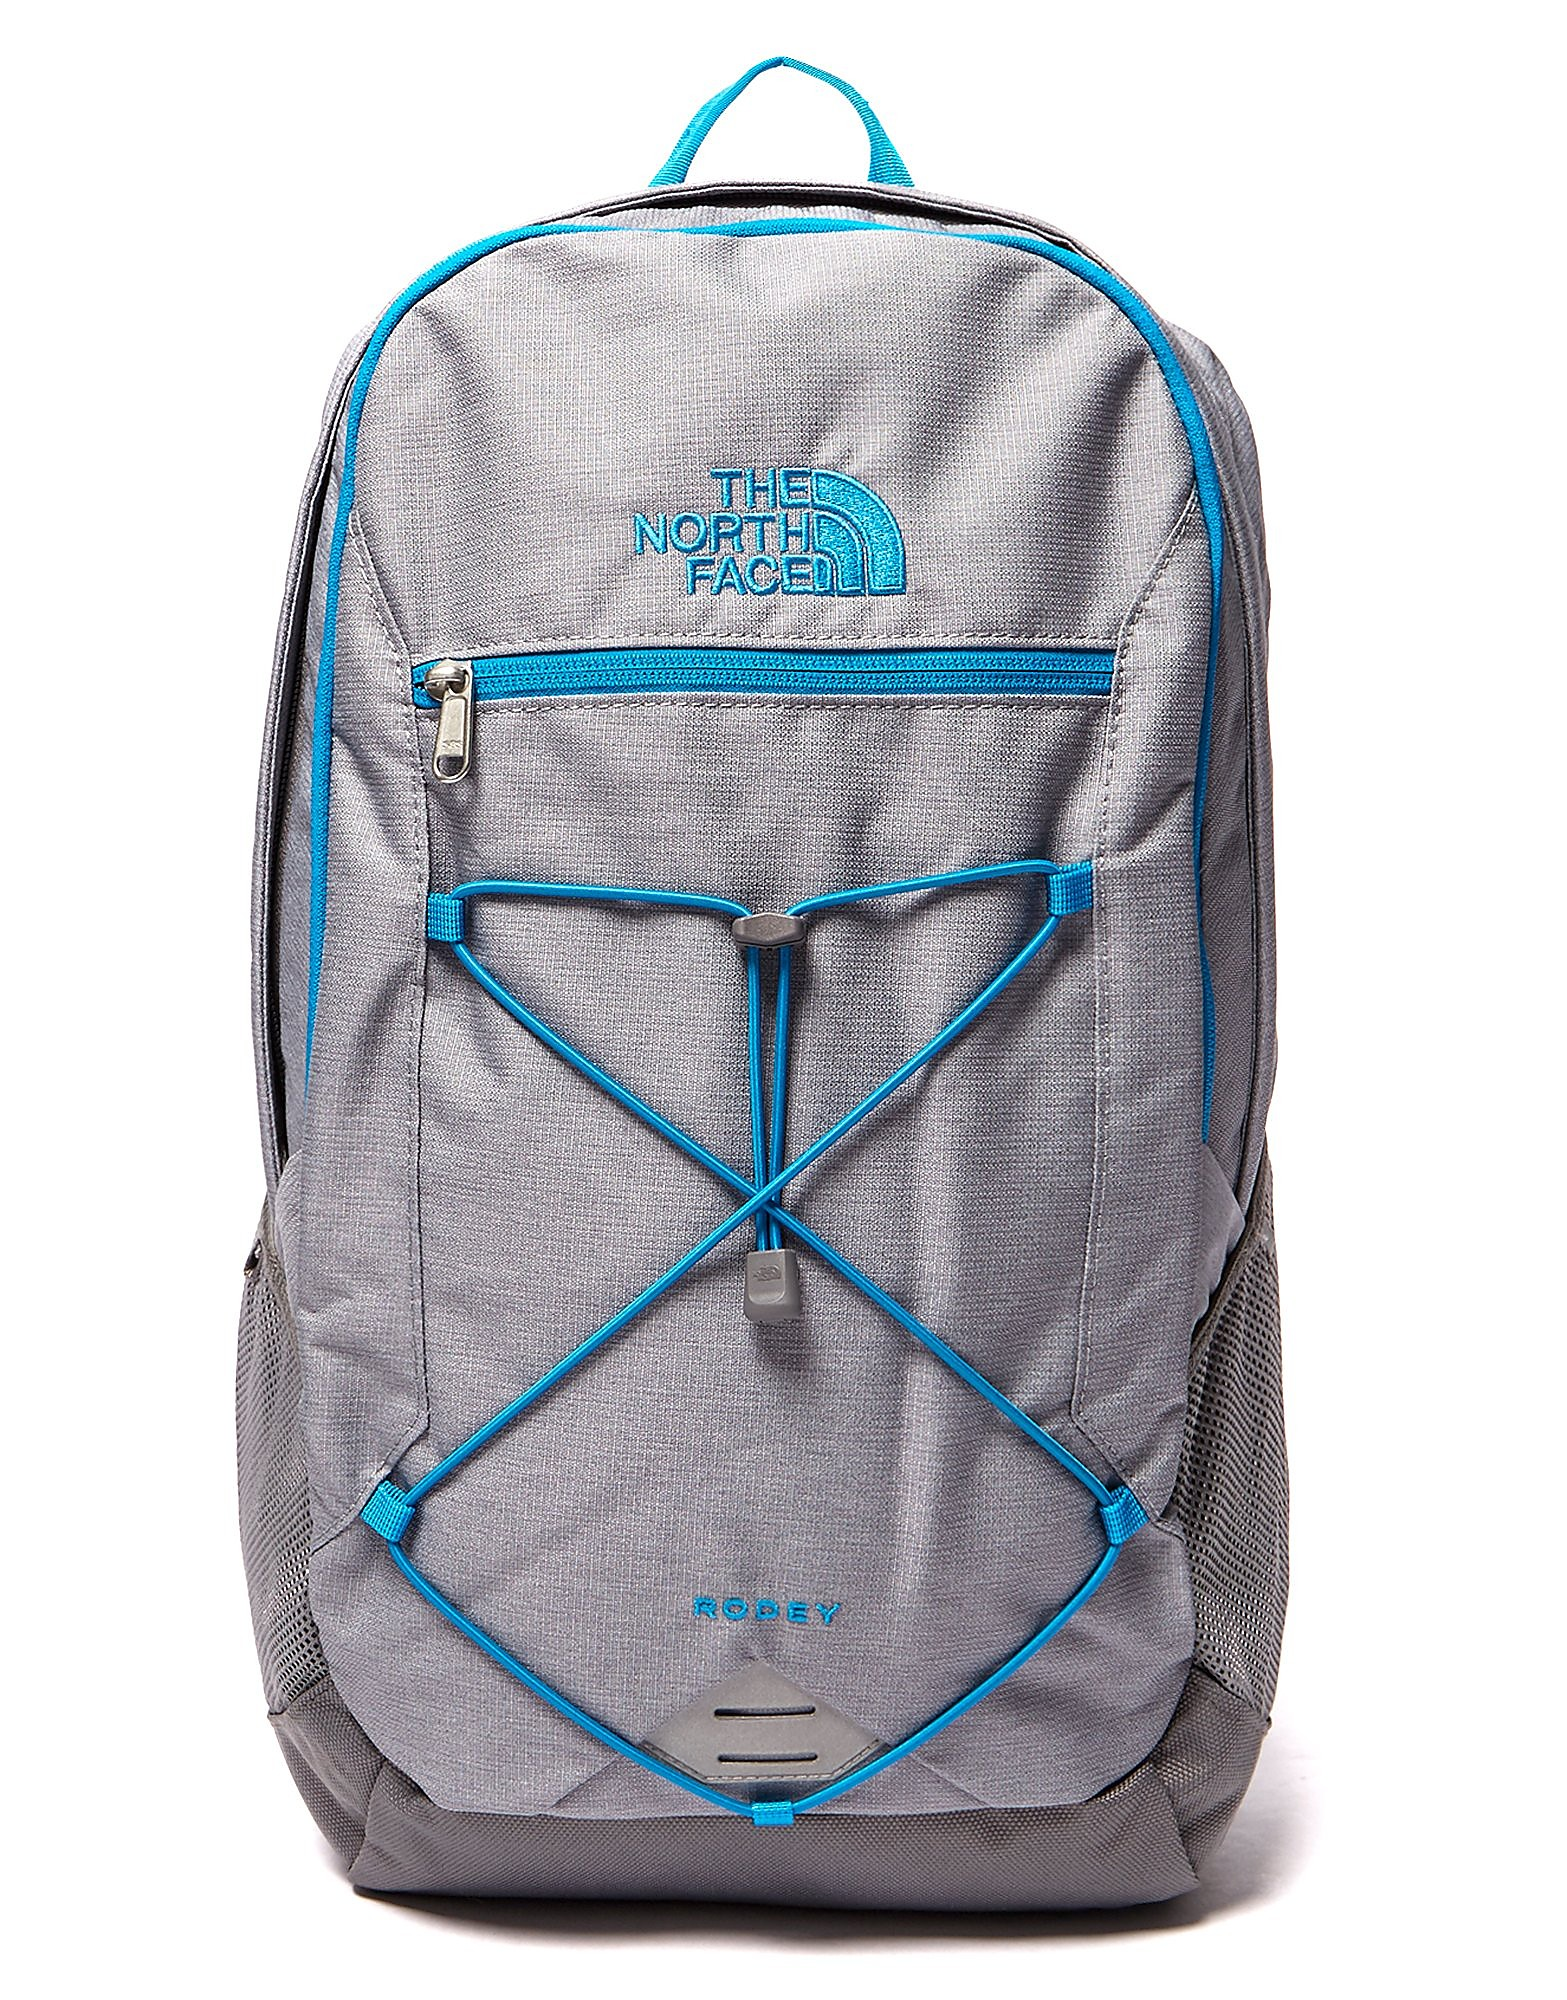 The North Face Sac à dos Rodey Homme